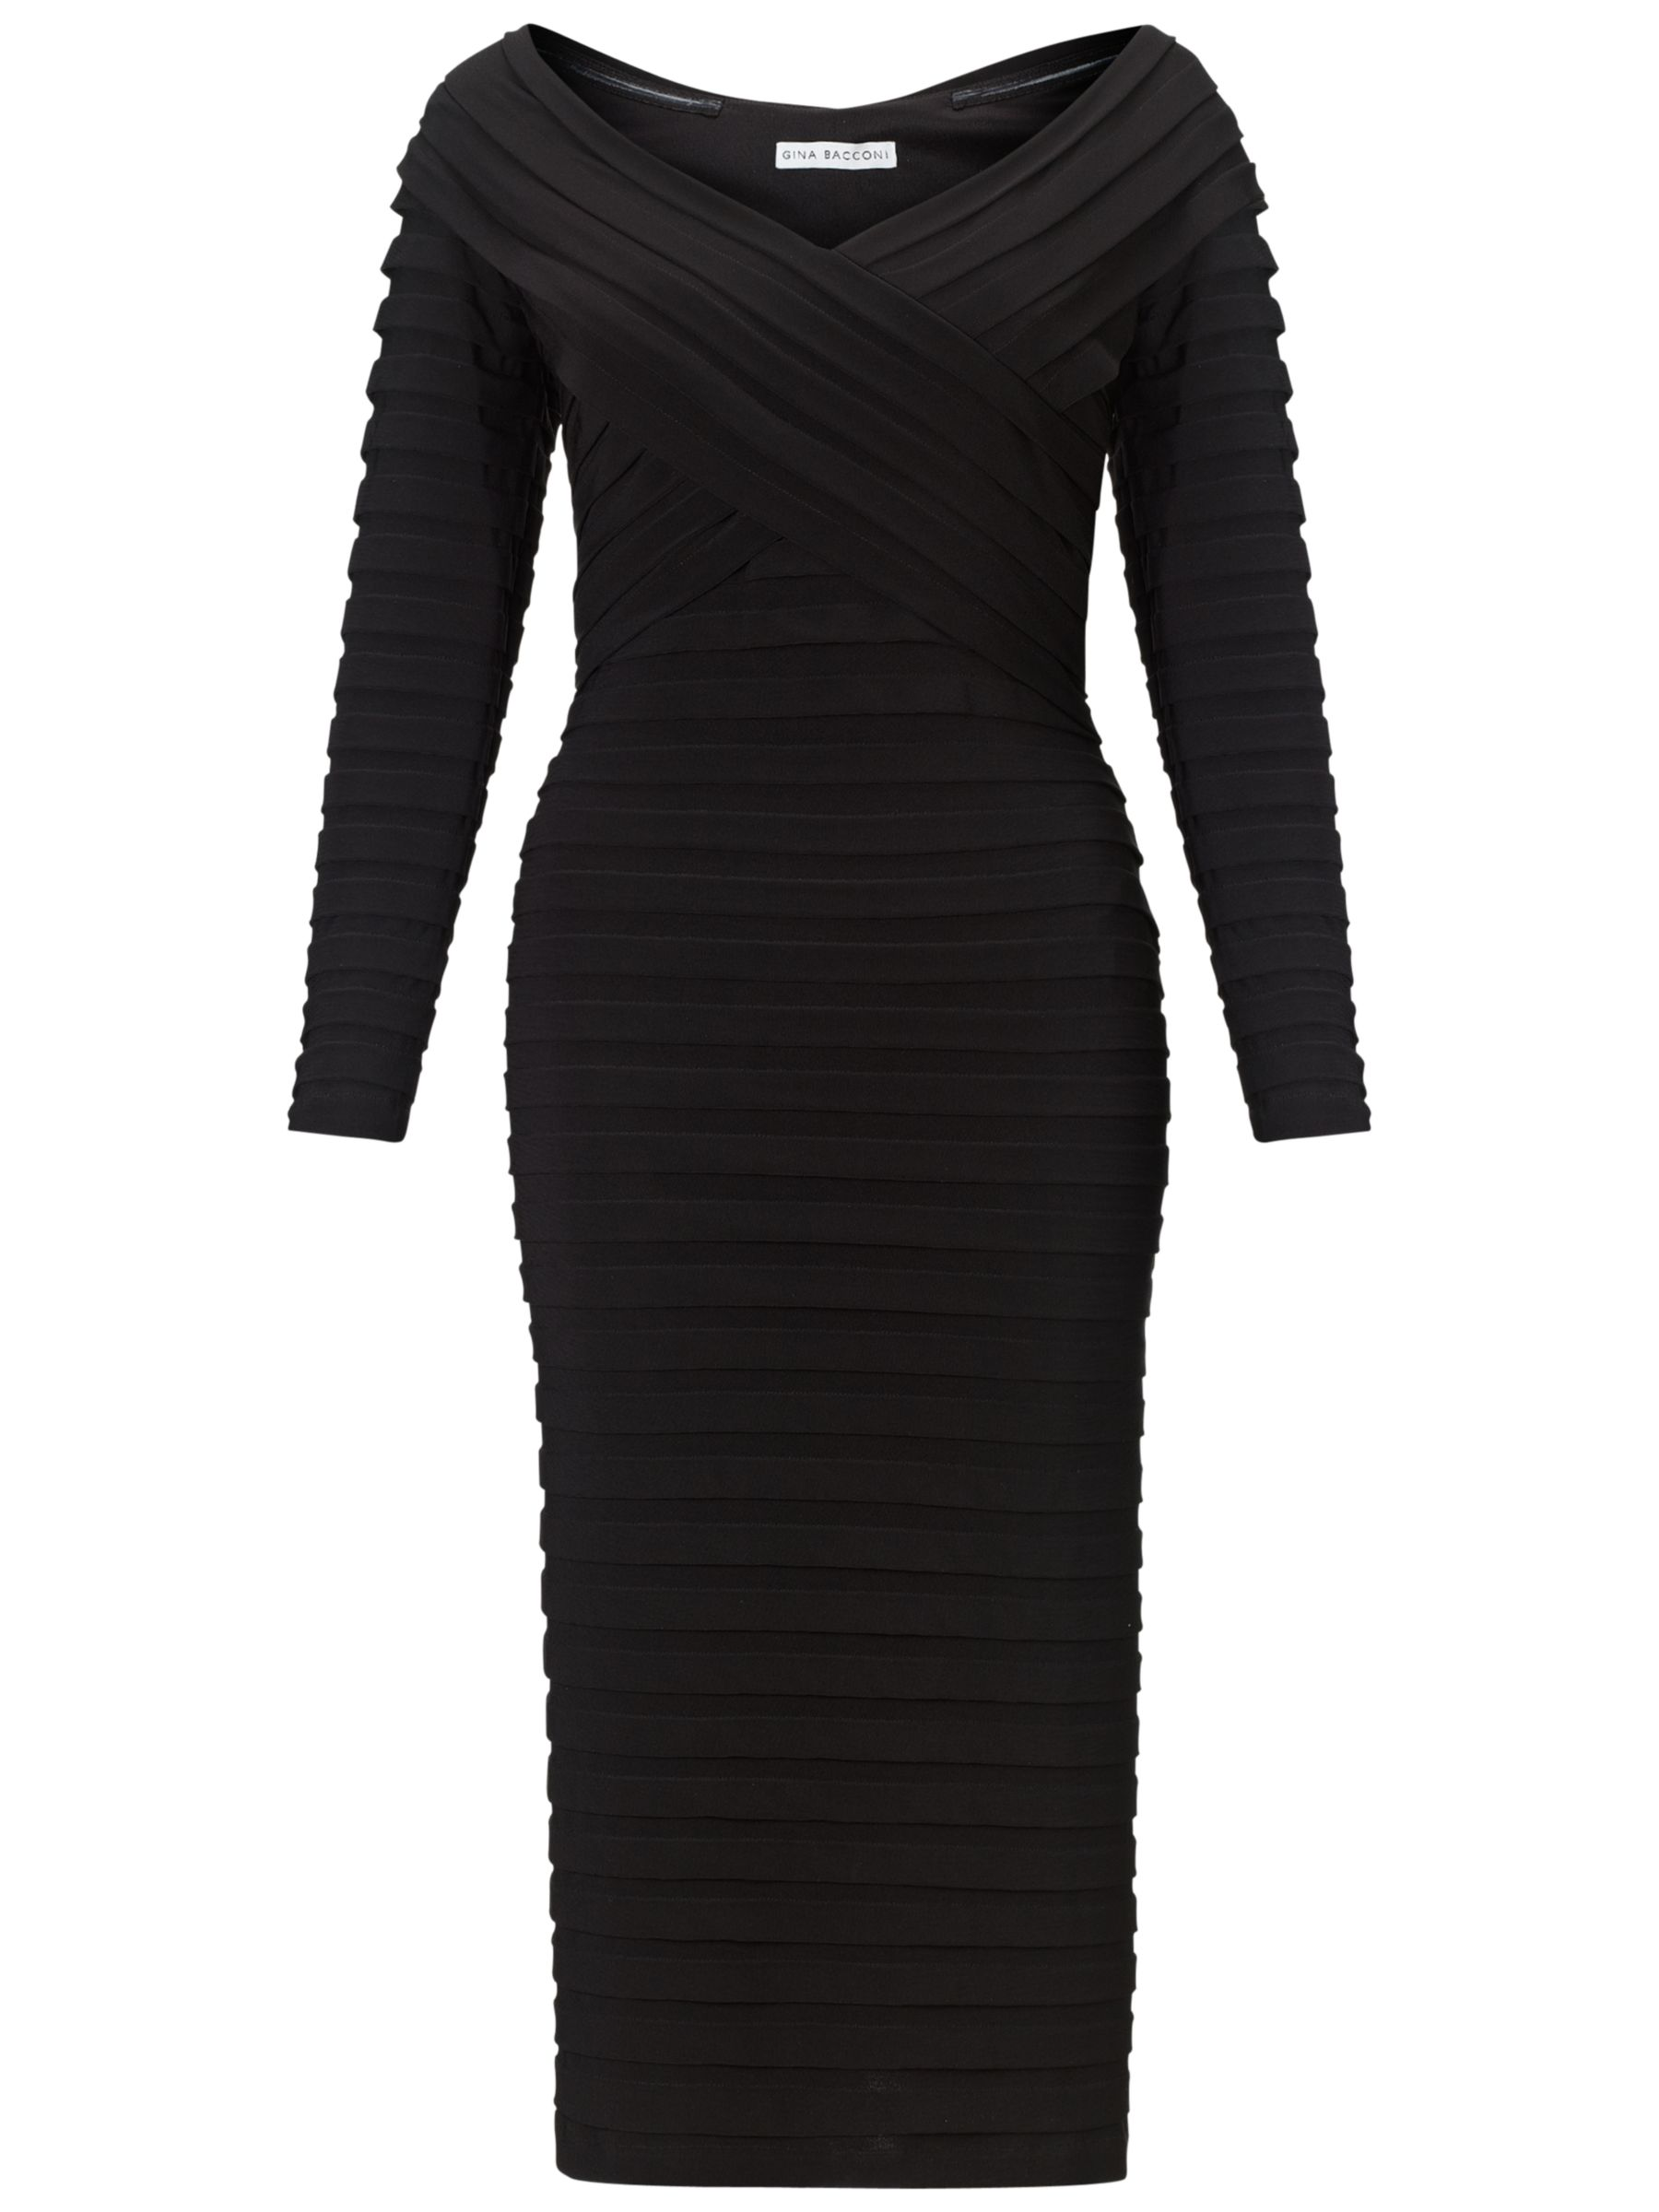 gina bacconi jersey bandage dress black, gina, bacconi, jersey, bandage, dress, black, gina bacconi, 8|10|12|20|14|16, clearance, womenswear offers, womens dresses offers, new years party offers, women, plus size, inactive womenswear, new reductions, womens dresses, special offers, 1769224